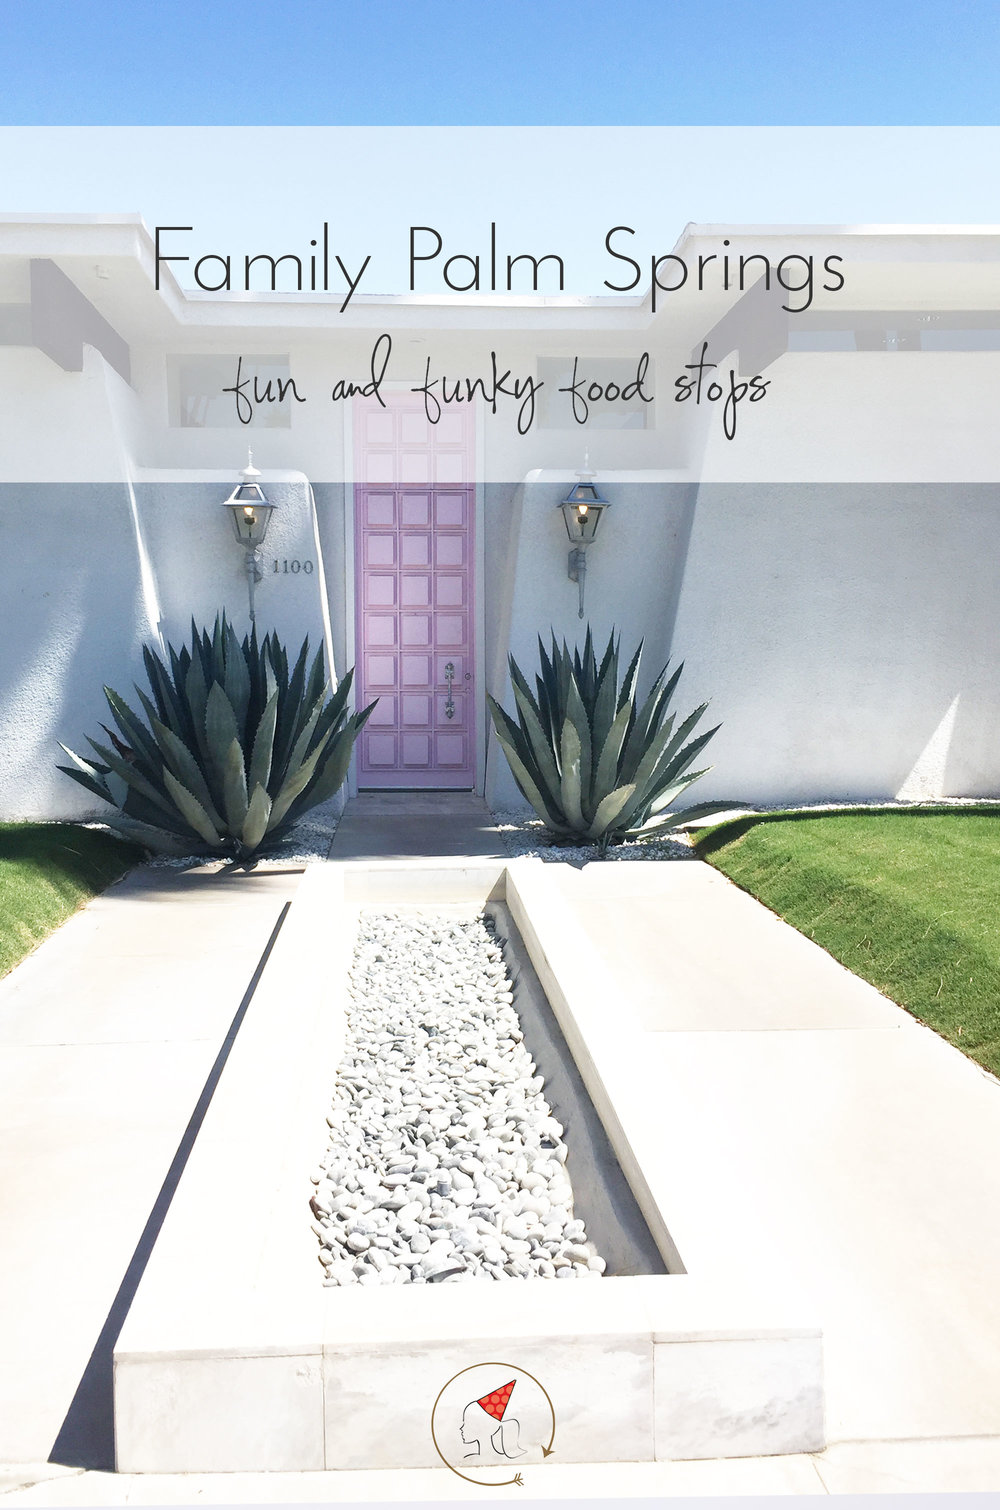 Ali Hedin | Palm Springs for the family!